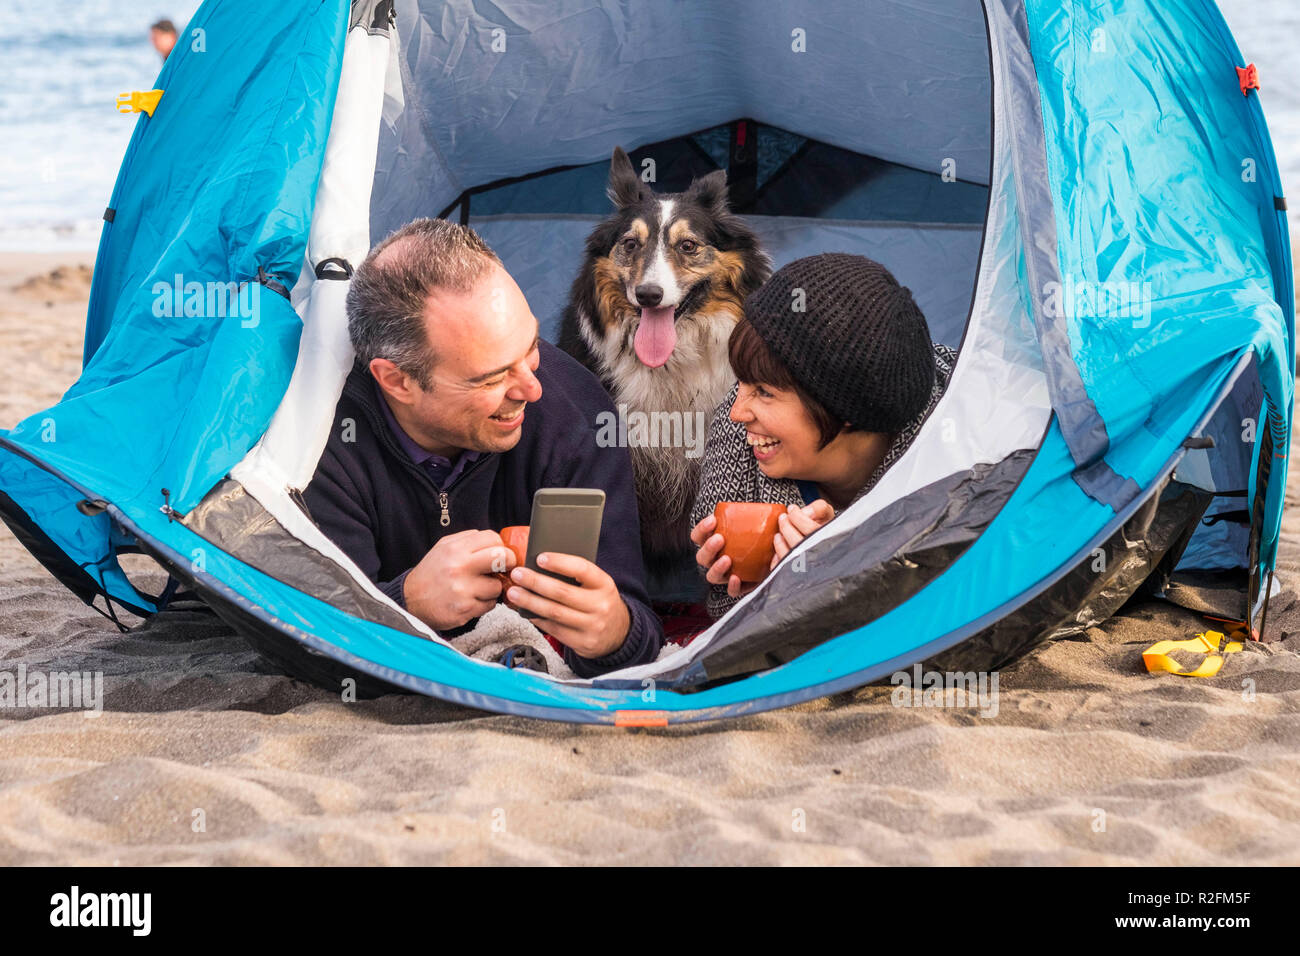 nice beautiful paople with cute puppy inside a tent using cellular phone to send message or take picture. beach camping freedom alternative vacation in tenerife with your best friends dog - Stock Image